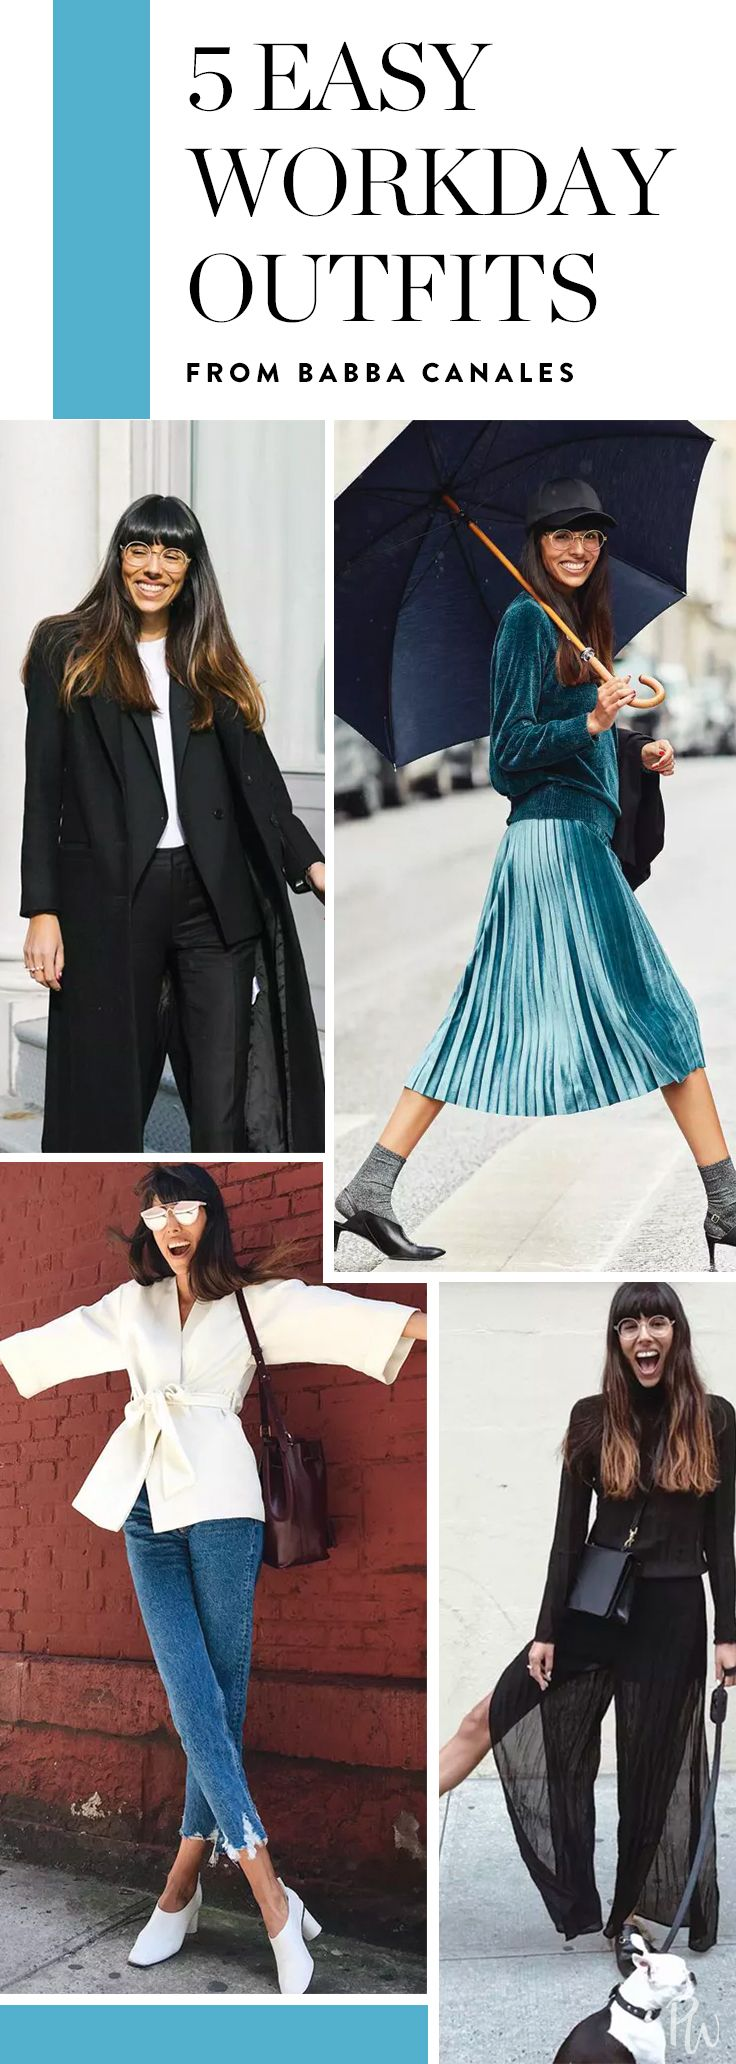 Here, a week's worth of workwear uniforms inspired by Babba to take you from Monday to Friday in style. Get all the work outfit ideas here. #workoutfits #workoutfitideas #outfitideas #fashion